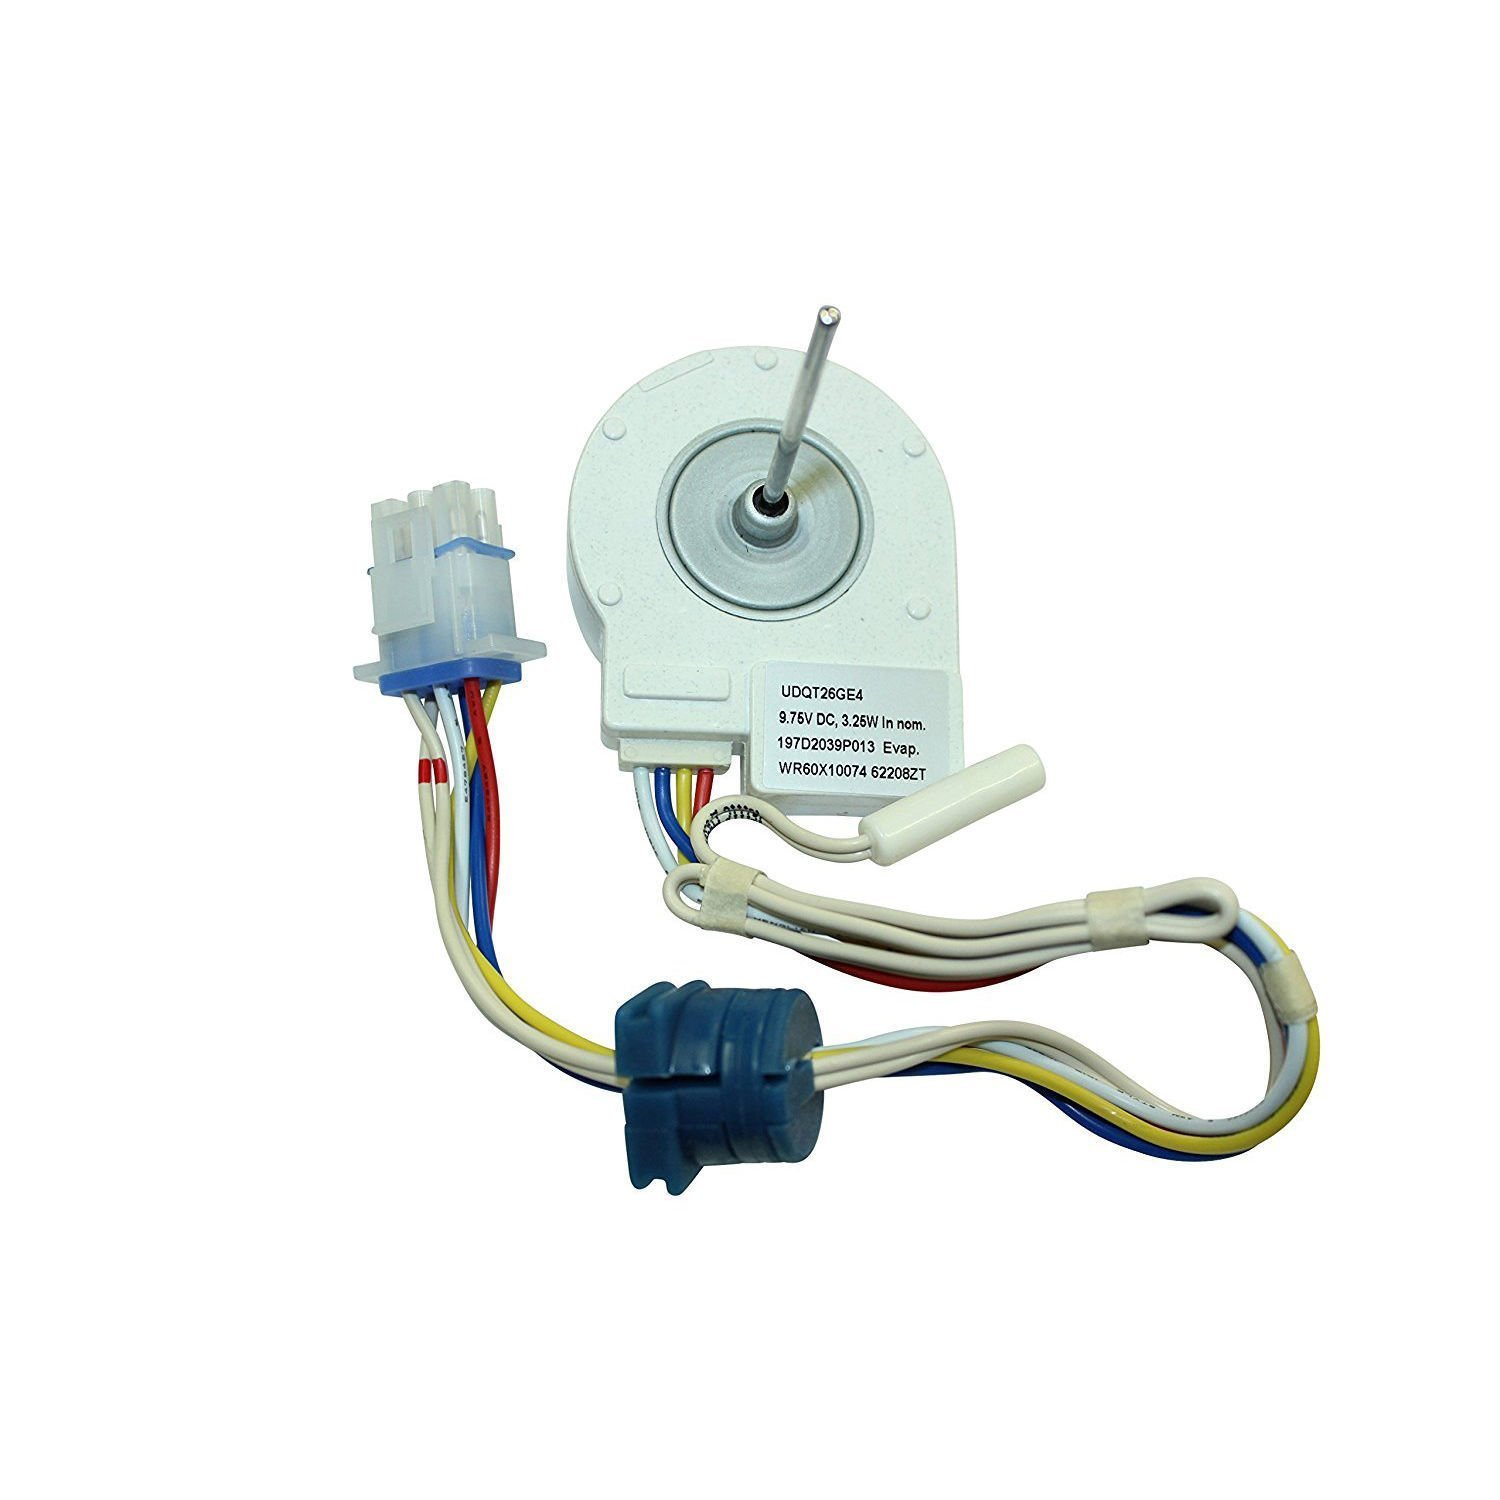 WR60X10074 Refrigerator Evaporator Fan Motor Replacement For GE